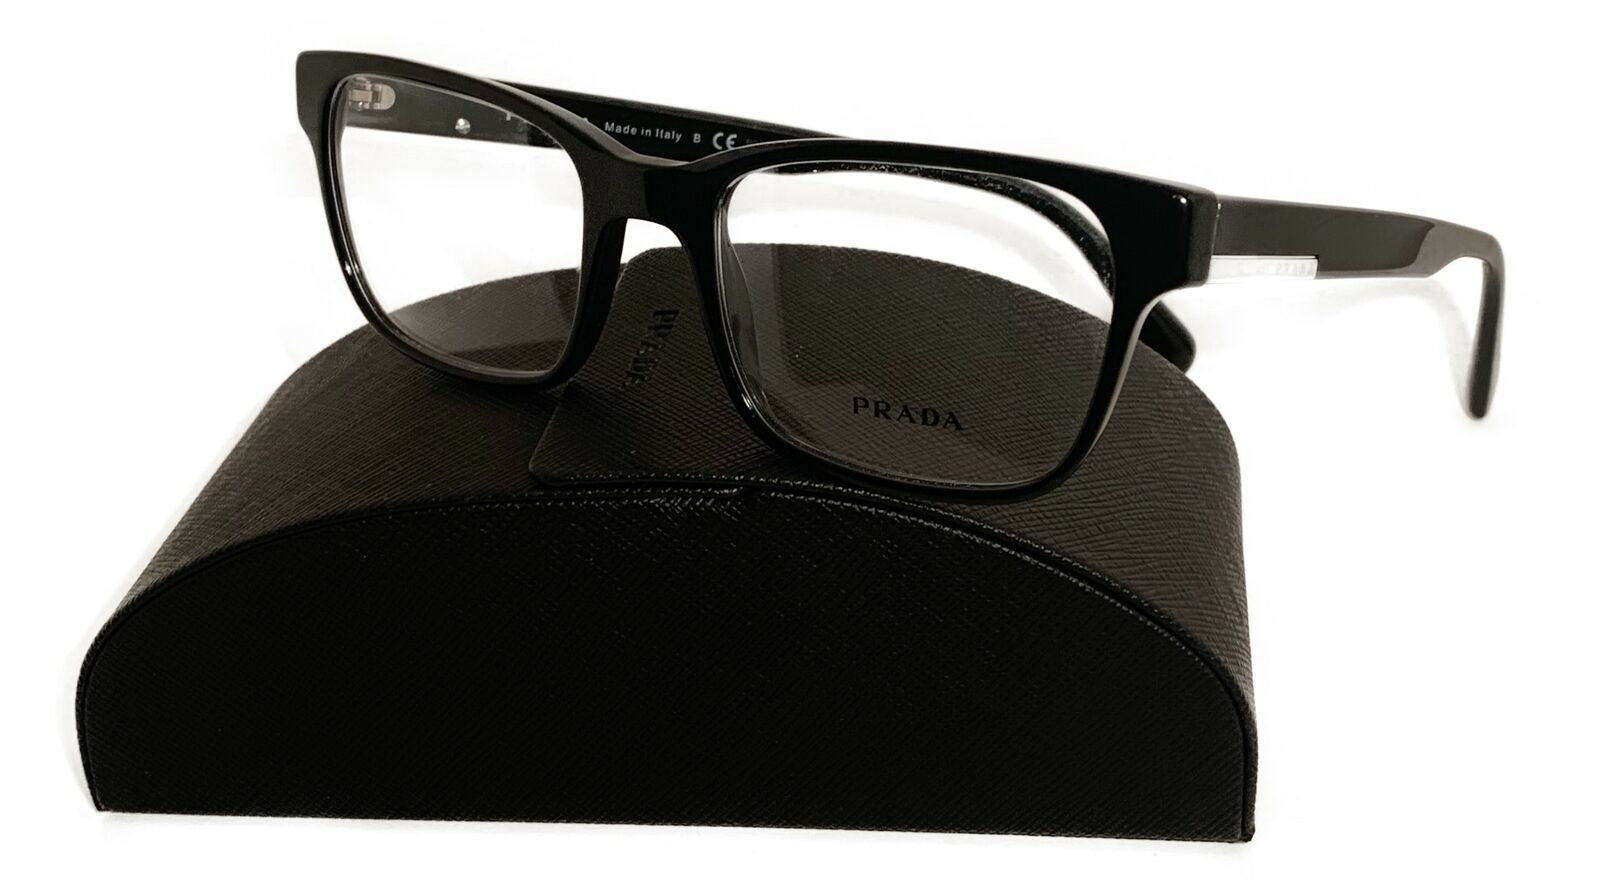 Prada Unisex Black Glasses with case VPR 06U 1AB-1O1 52mm